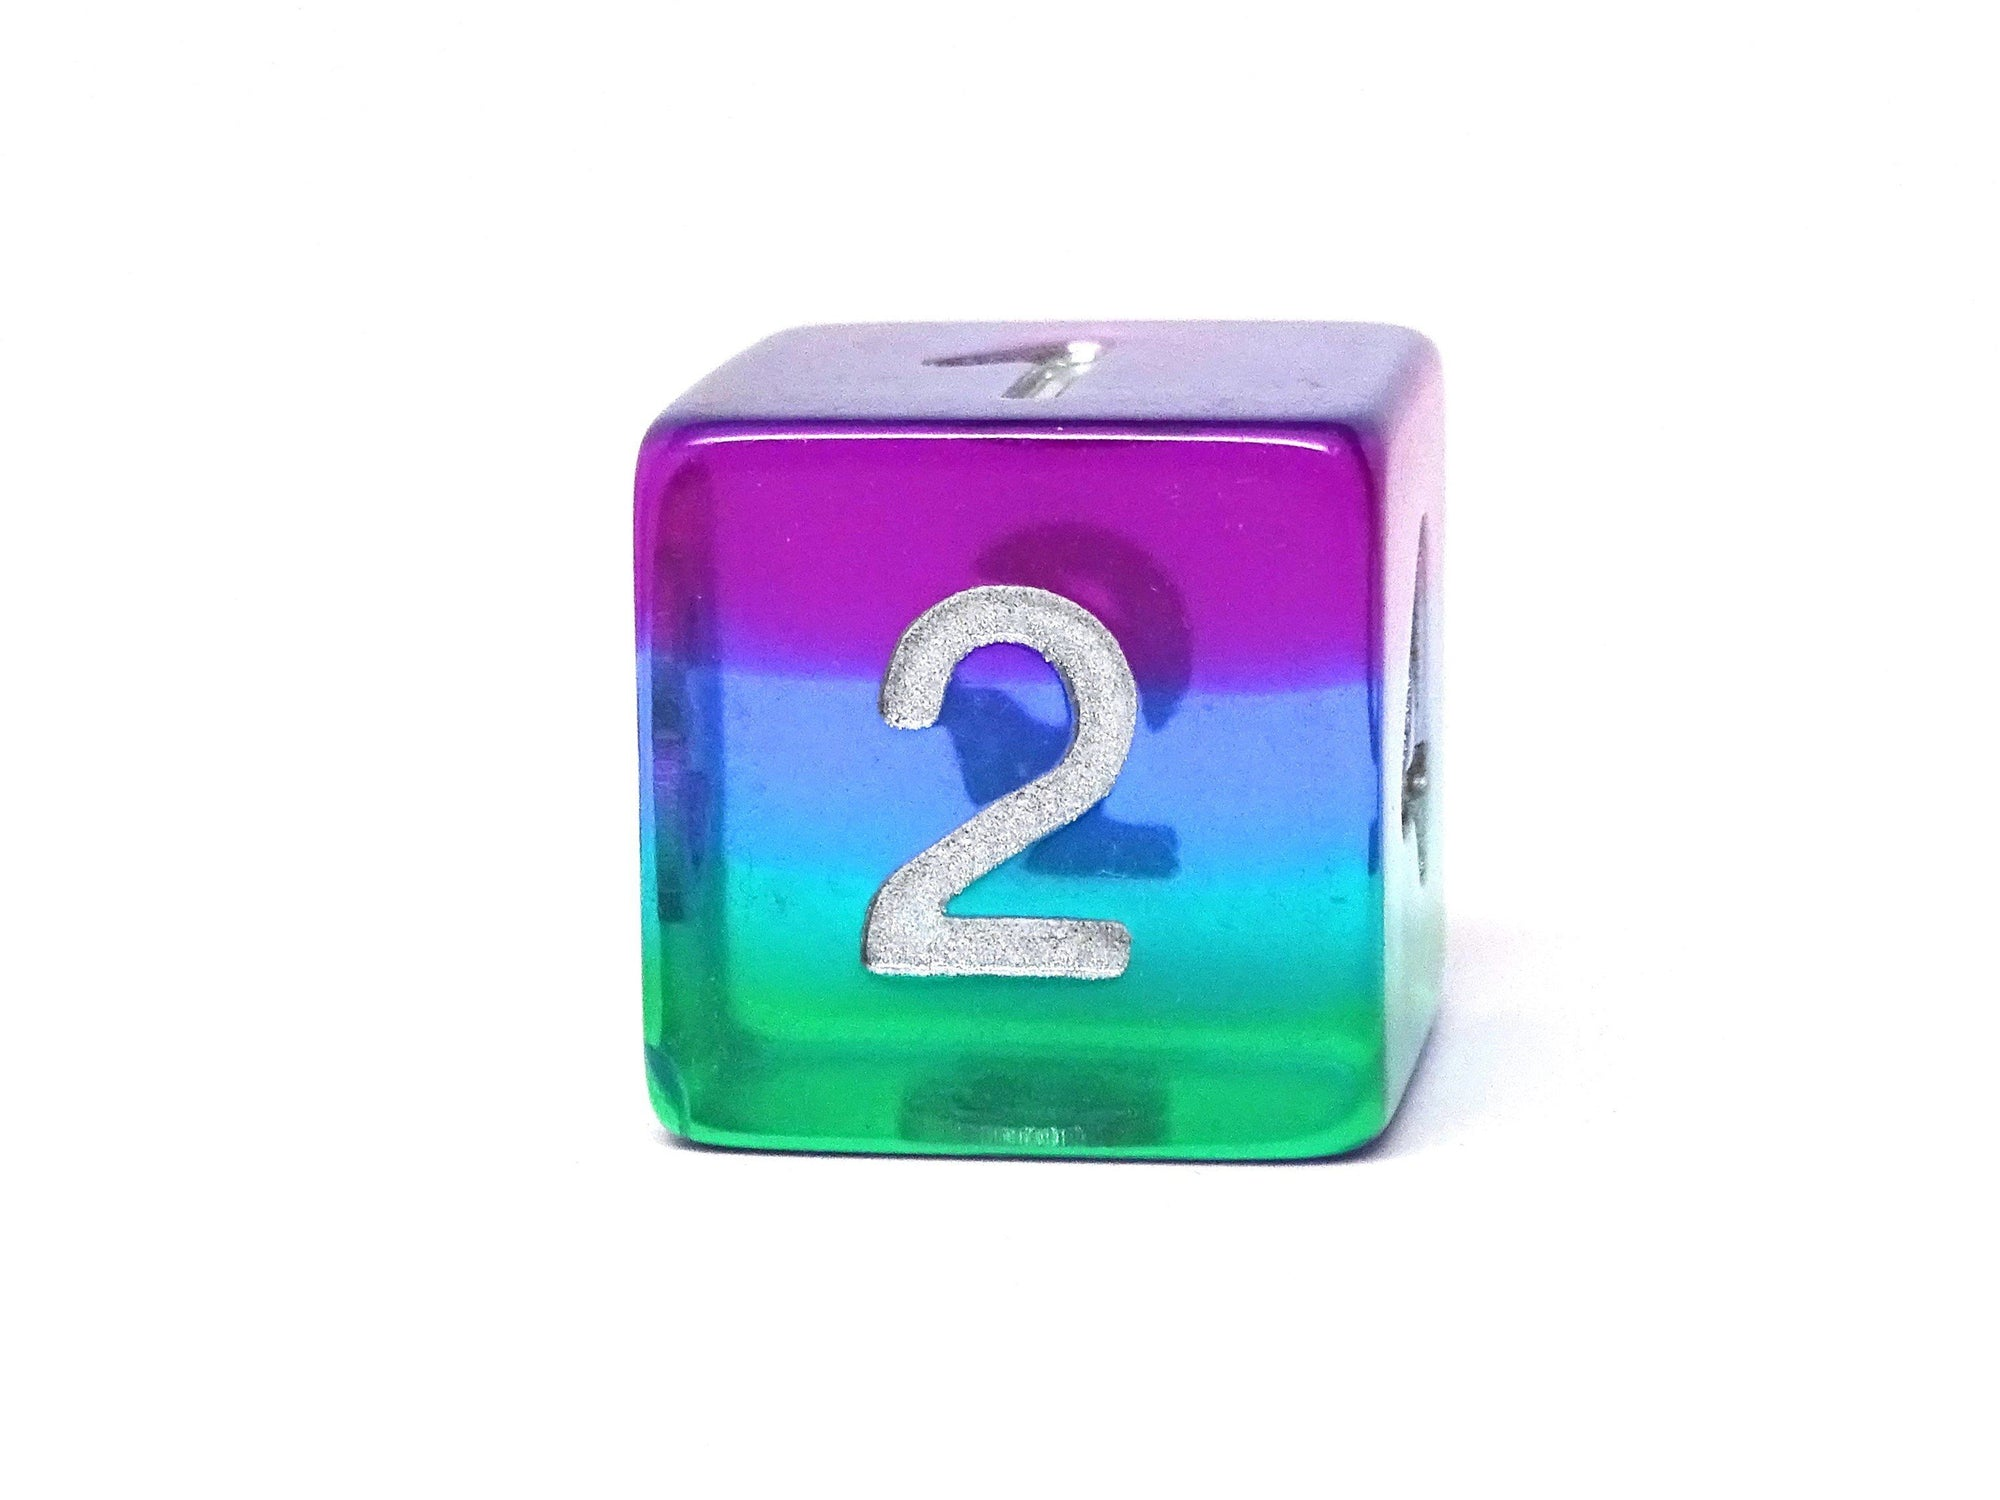 Translucent 3 Tone 7 Piece Dice Set - Green, Blue, Purple